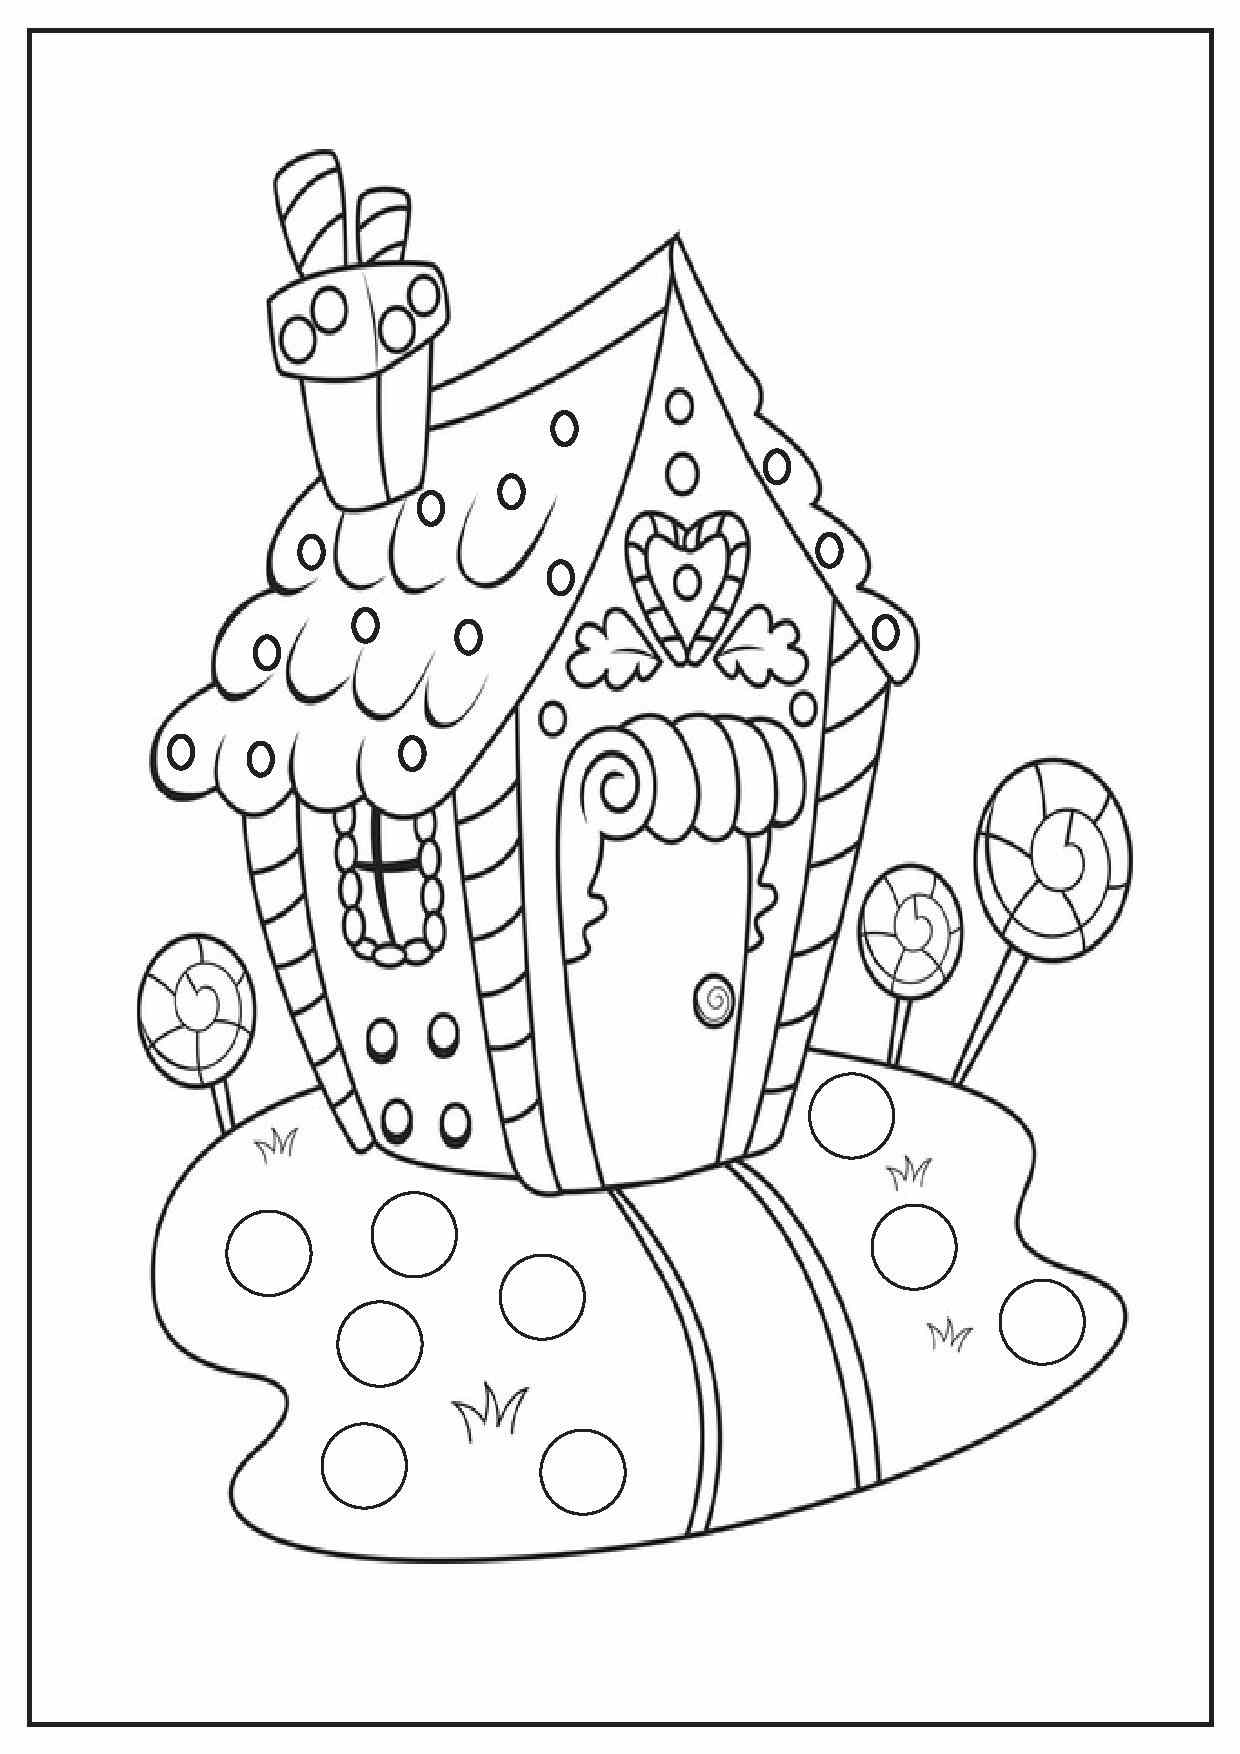 Christmas Coloring Contest Pages With Printable